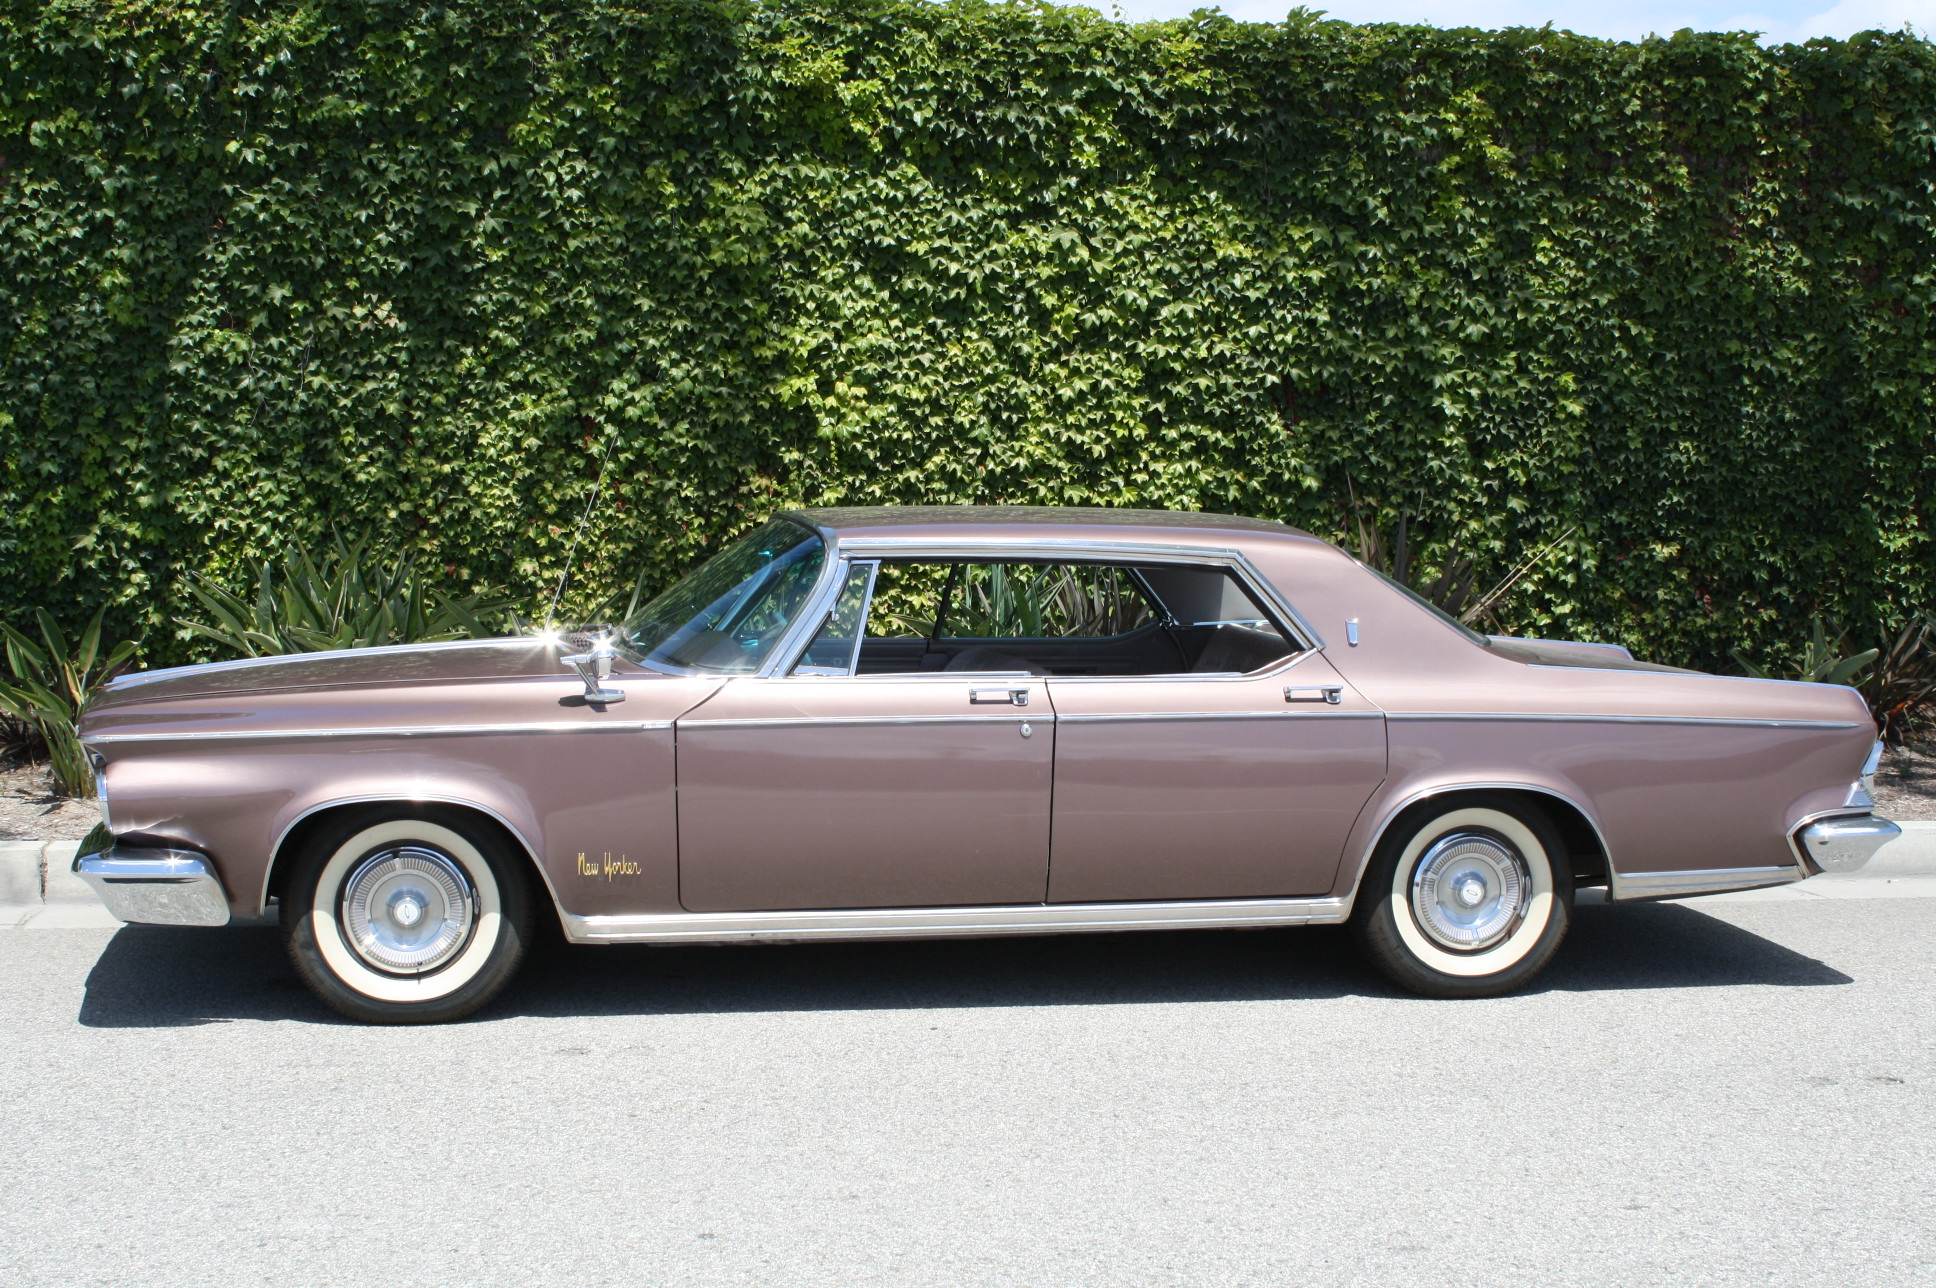 1964 Chrysler New Yorker 4 Door Hardtop The Vault